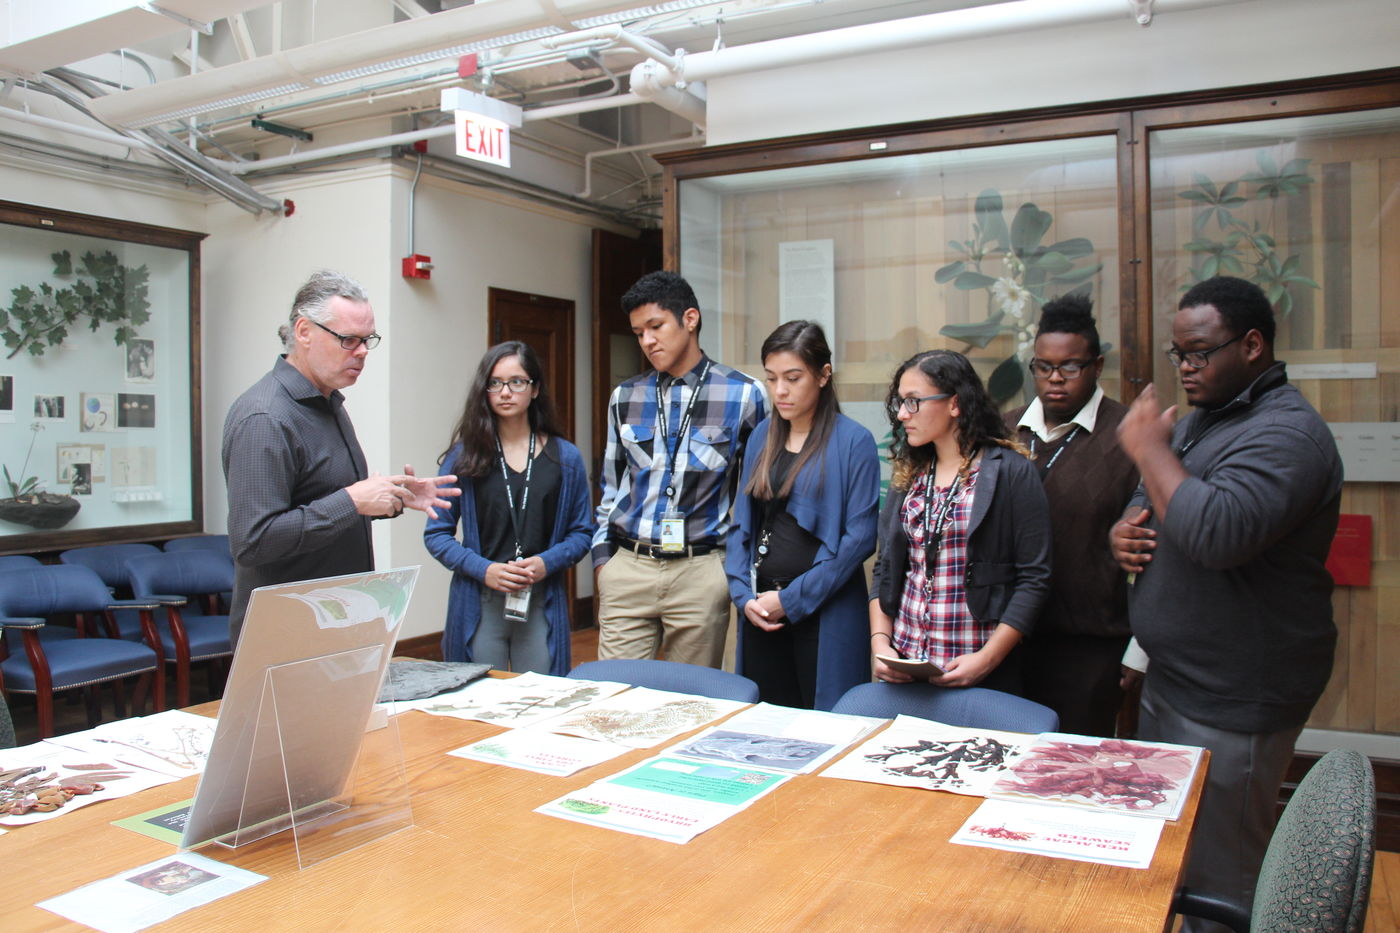 A scientist shares information about the botany collection at the Field Museum with a group of students in a classroom. Images of various plant specimens are laid out on a table as the scientist holds his hands out and lectures. Several cases of wax plant models visible in the background.